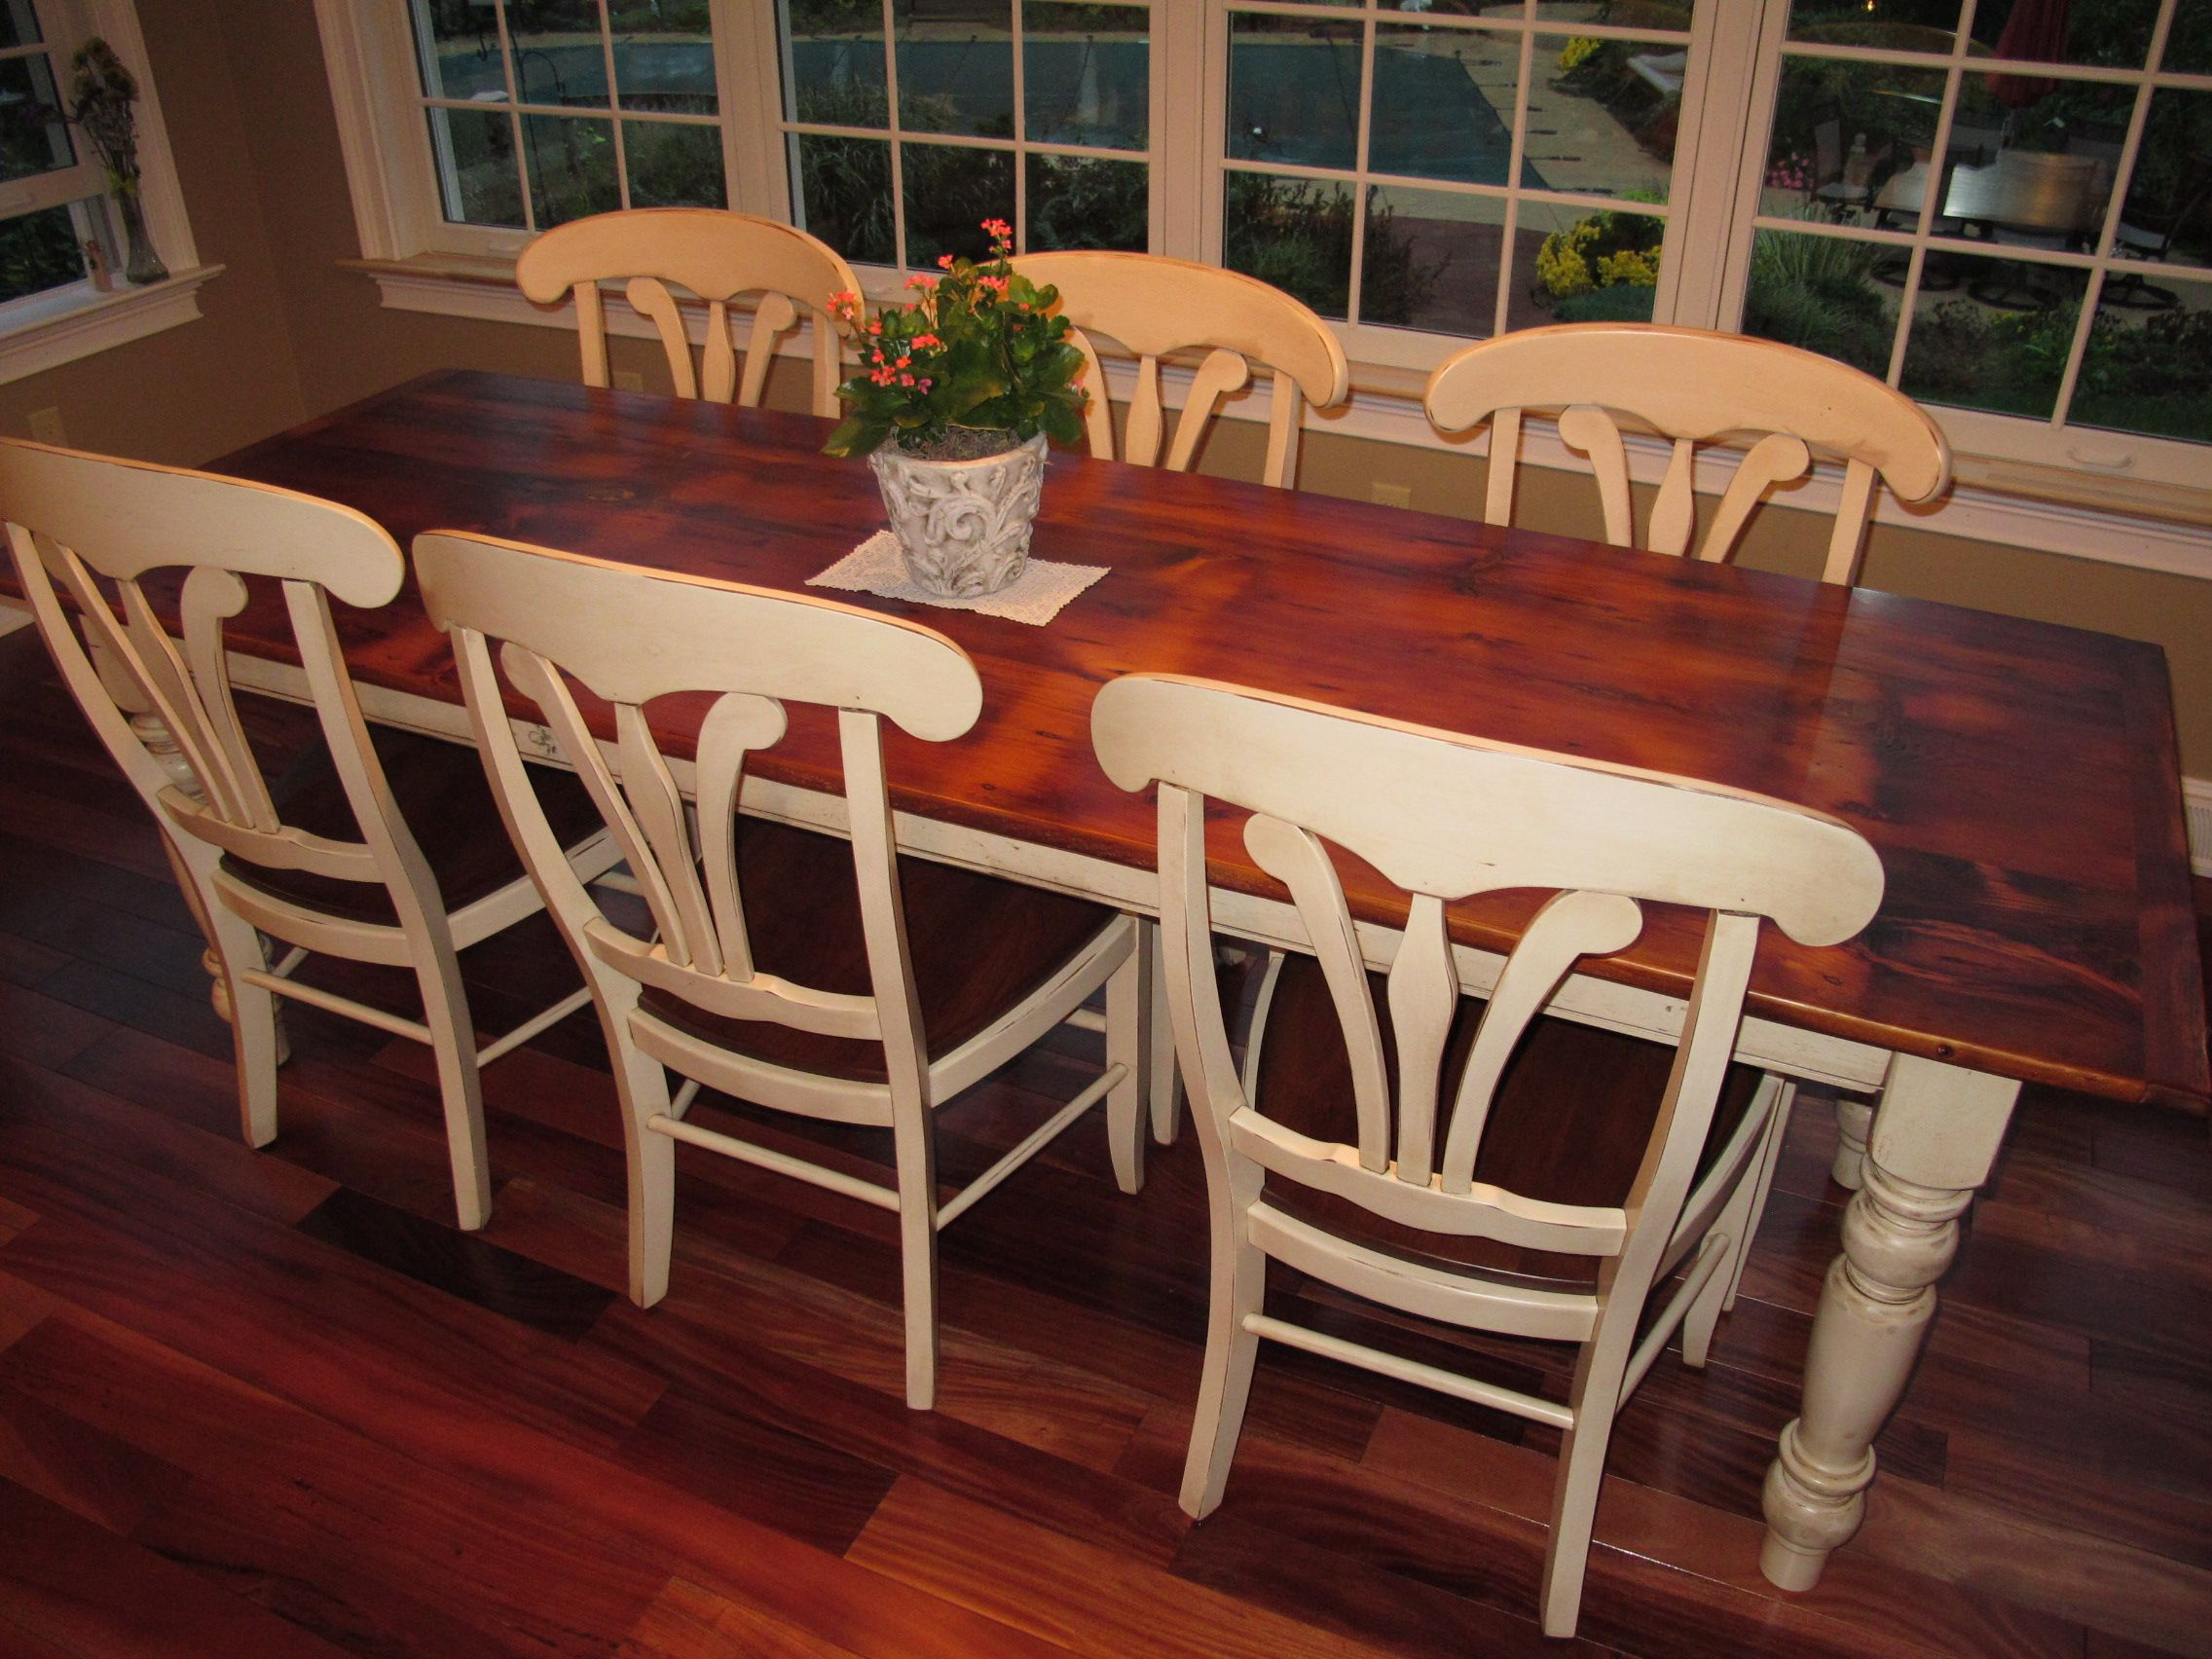 Farm Chairs White Pine Barn Wood Table With Antique White Legs And